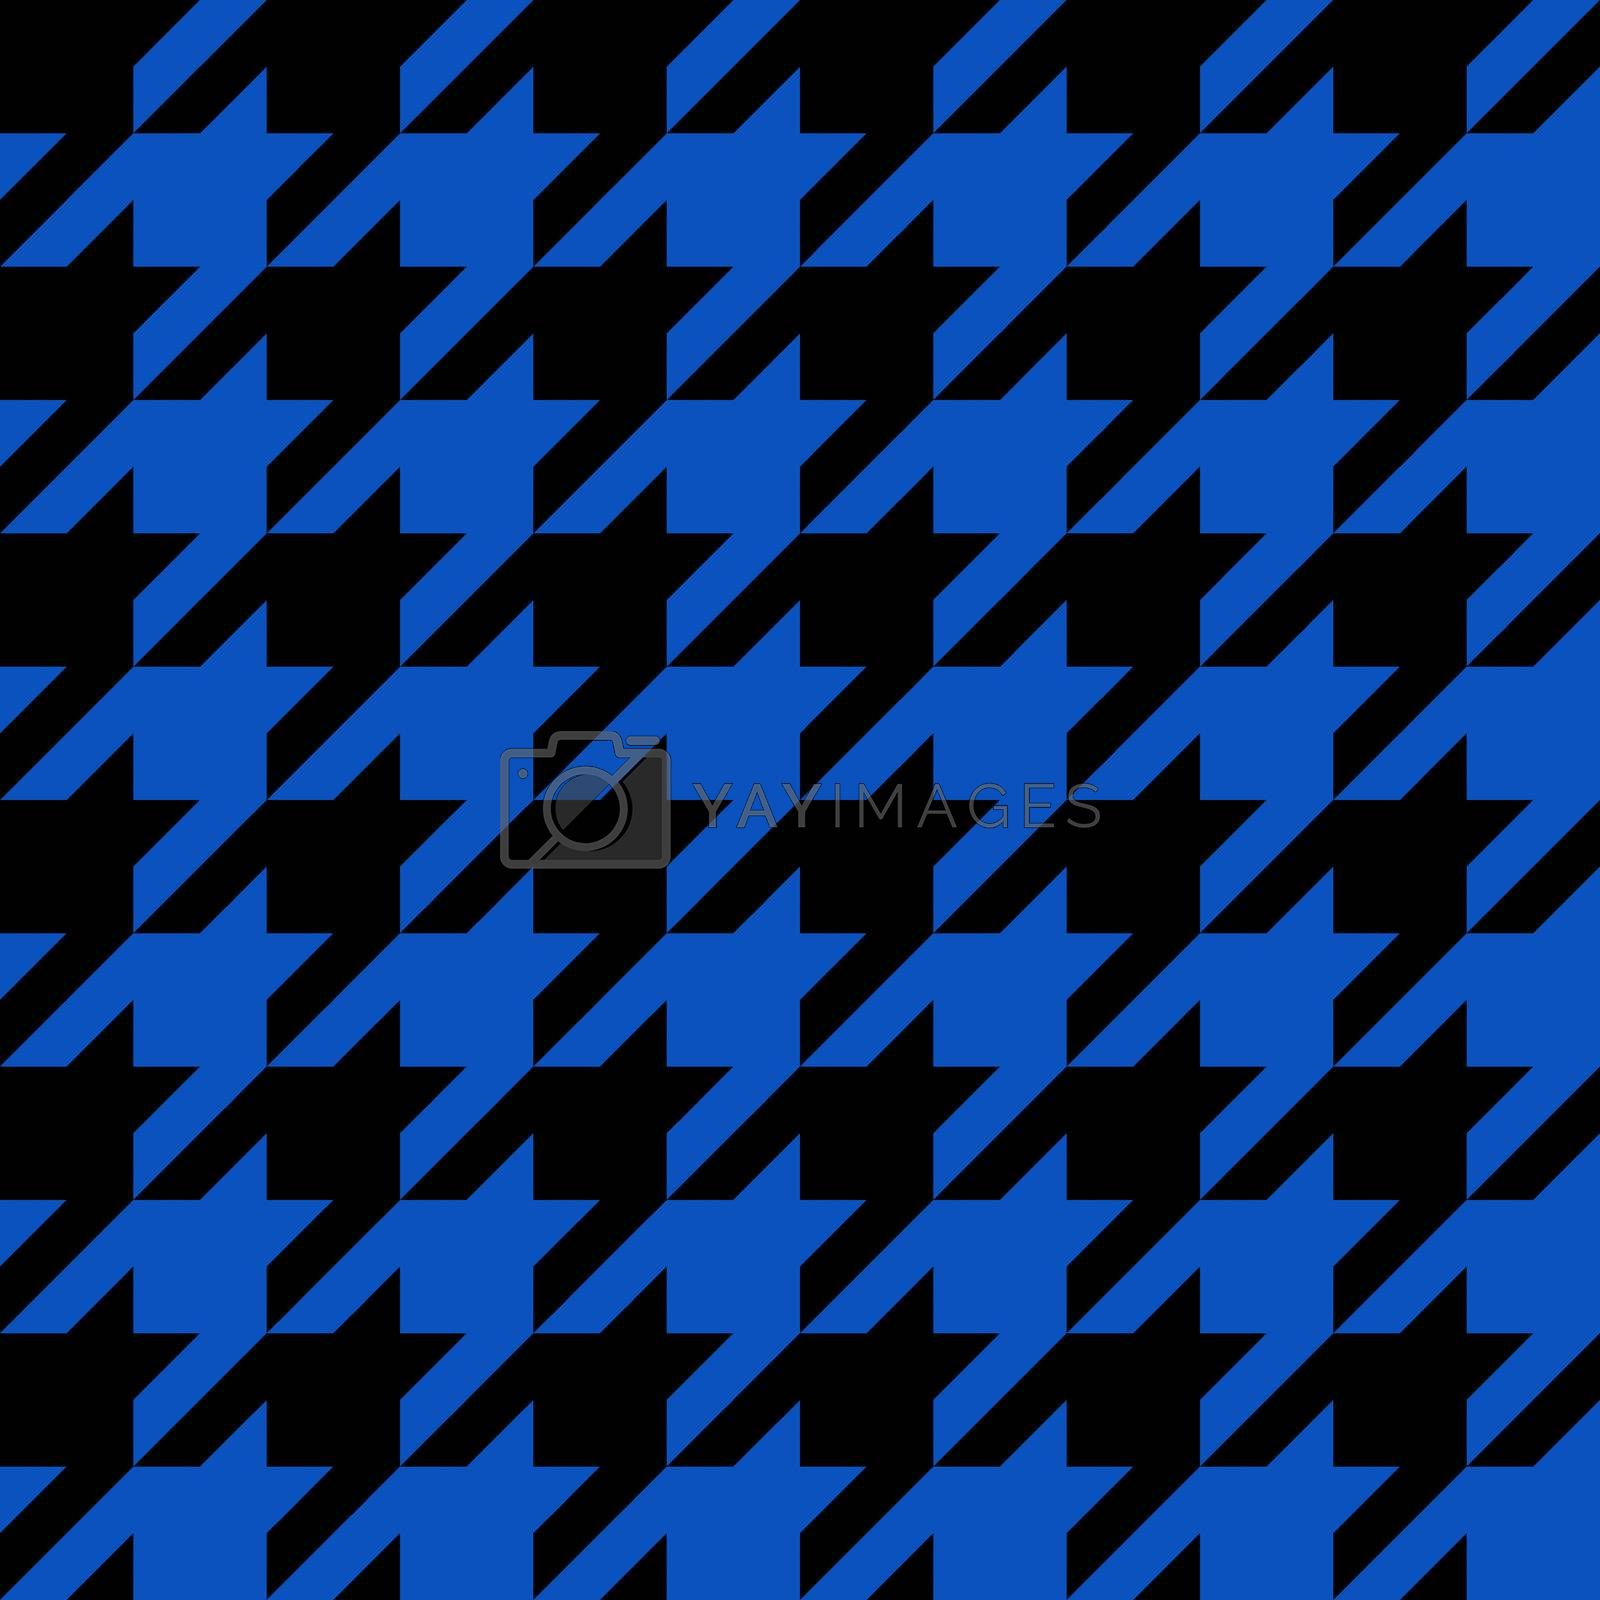 Black and blue seamless houndstooth pattern or texture as found in many popular fashion fabrics.